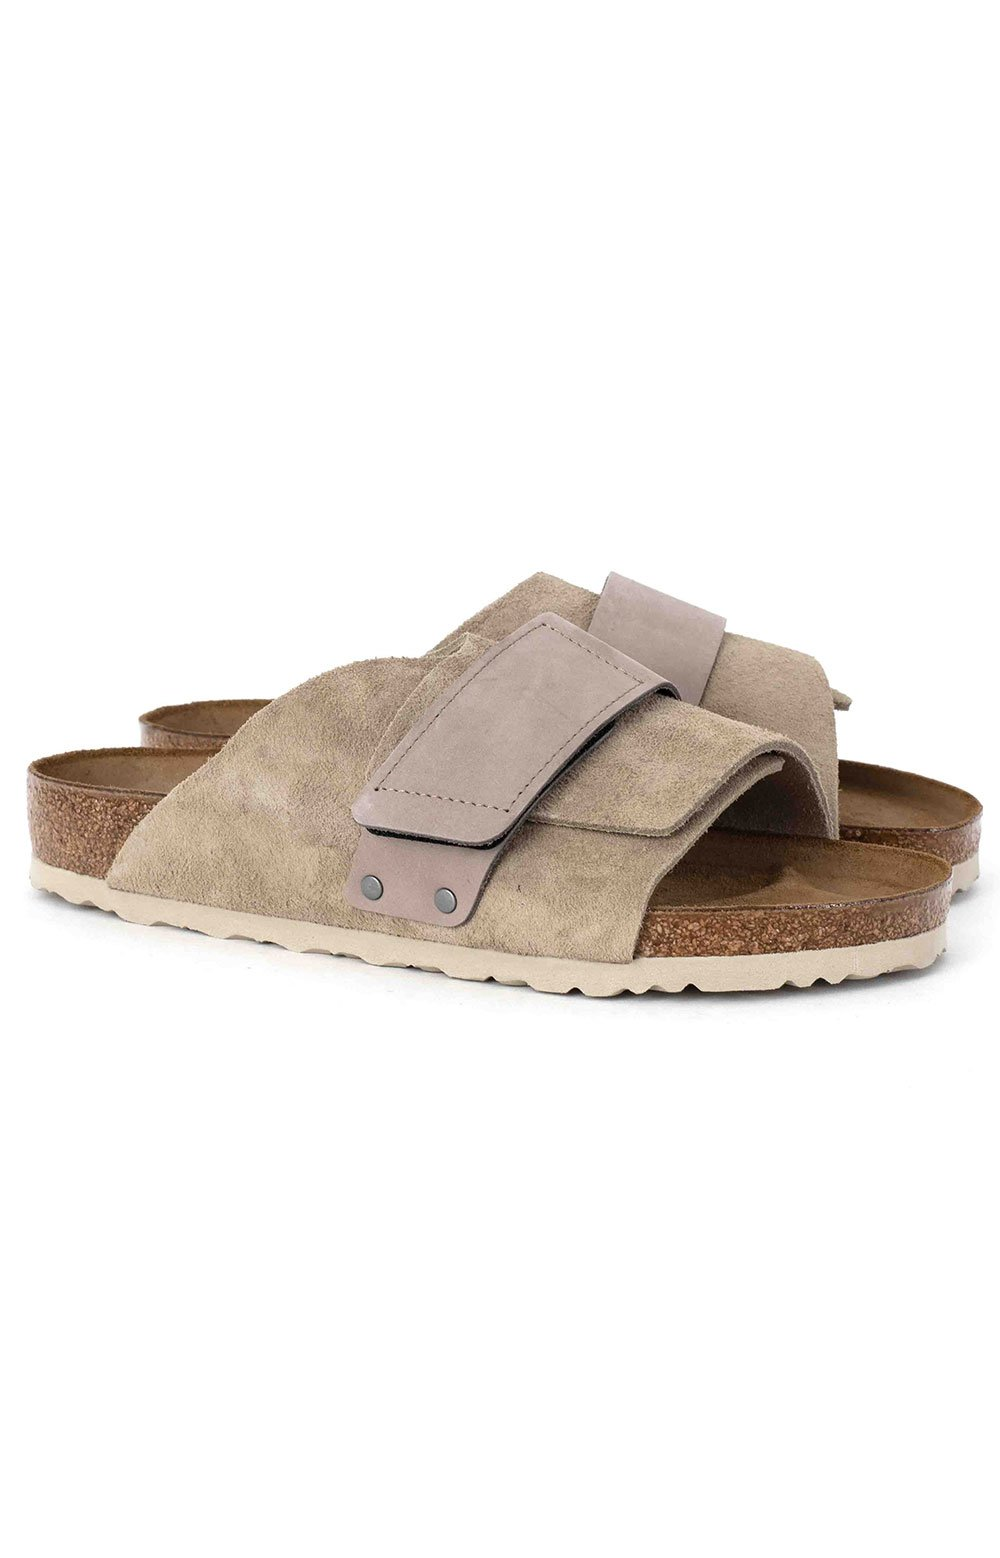 (1015572) Kyoto Sandals - Taupe